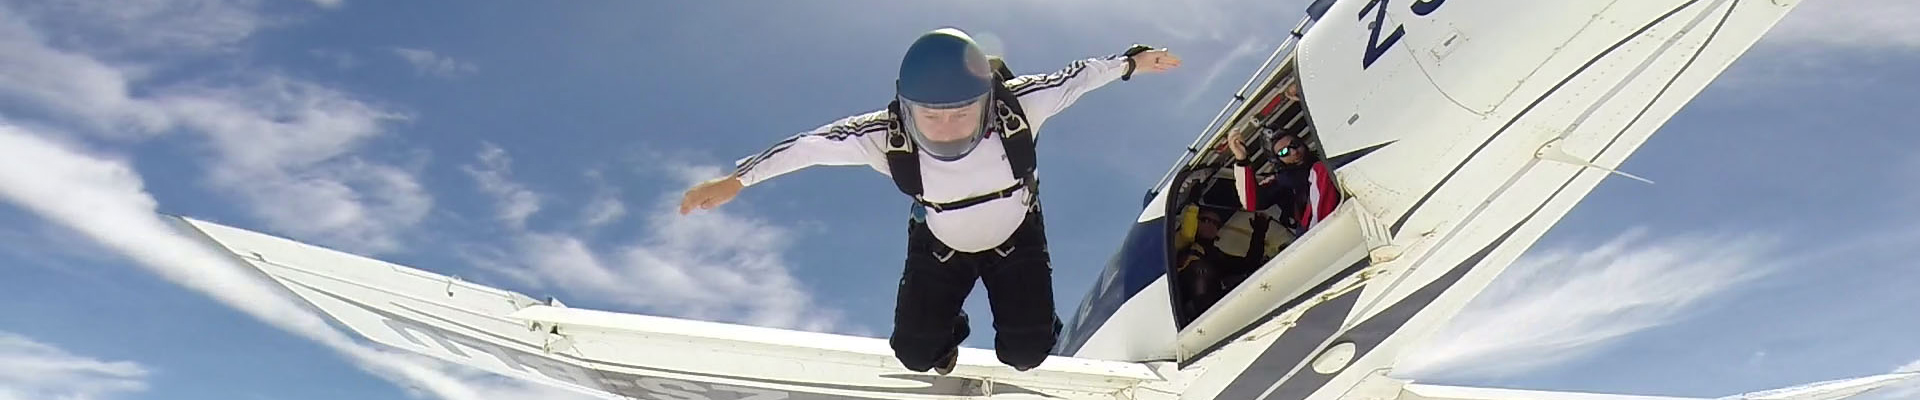 Johannesburg Skydiving Club - South Africa - Dropzone com